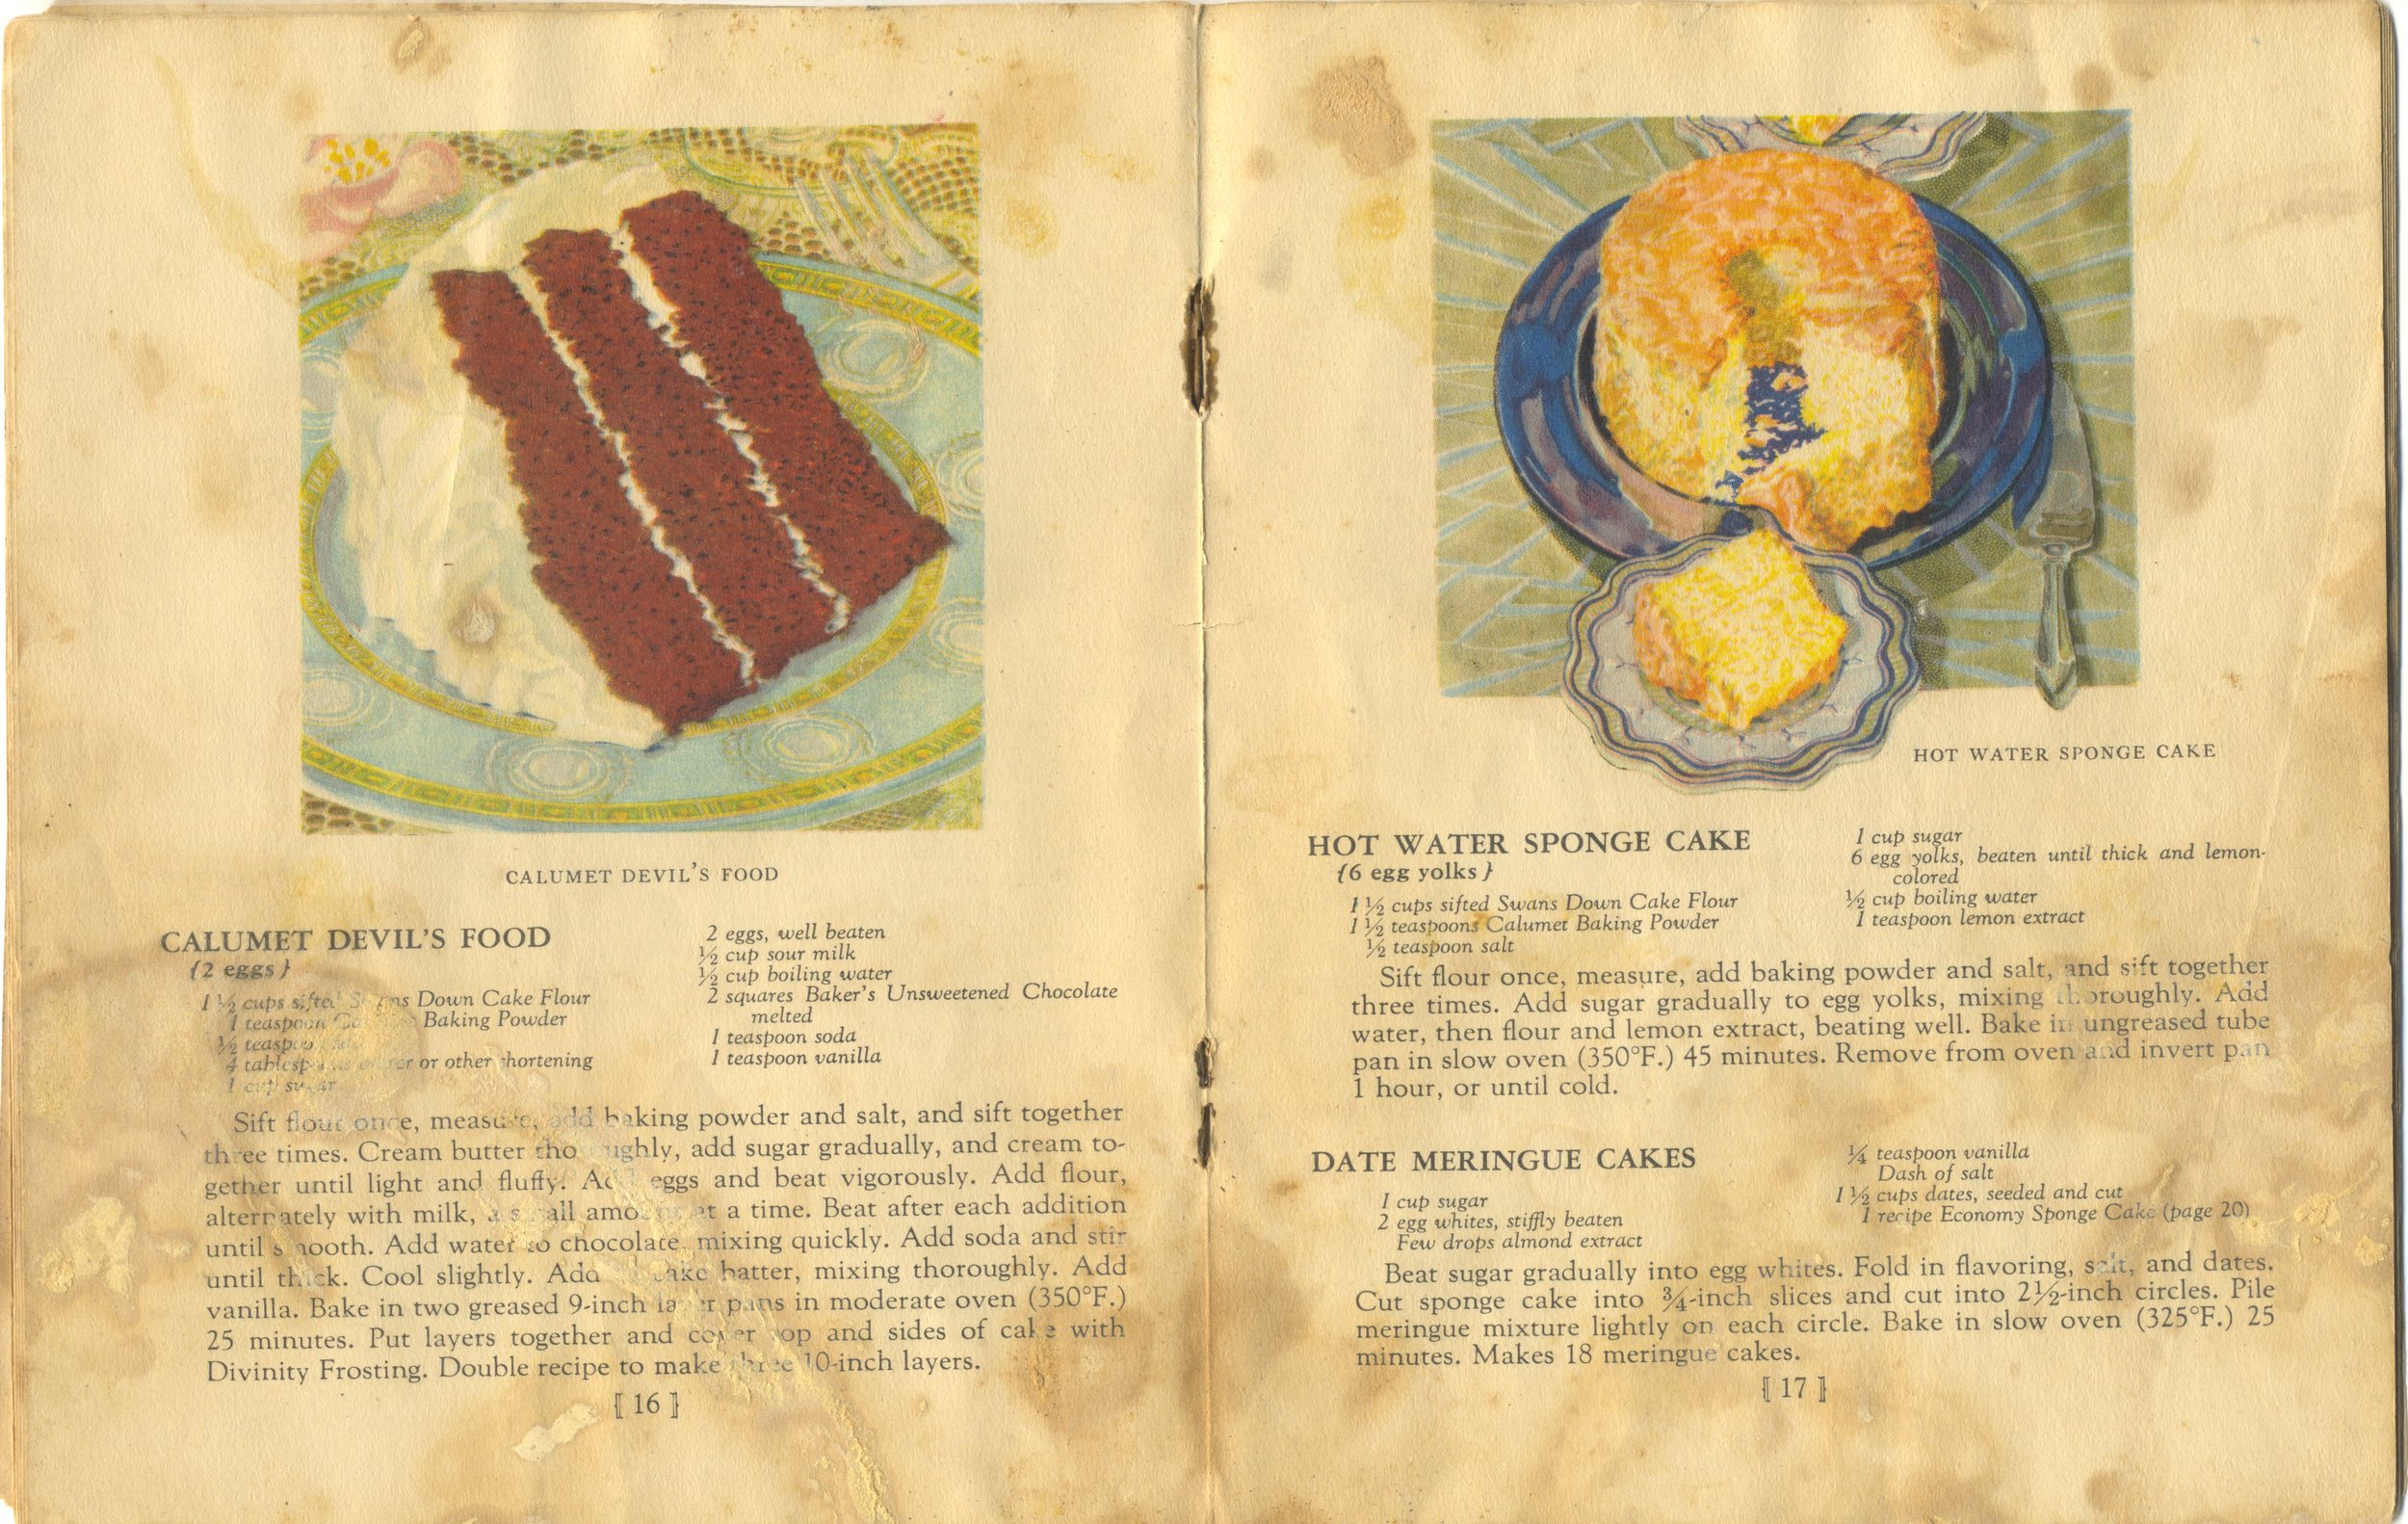 Illustration from the 1929 Calumet Baking Book